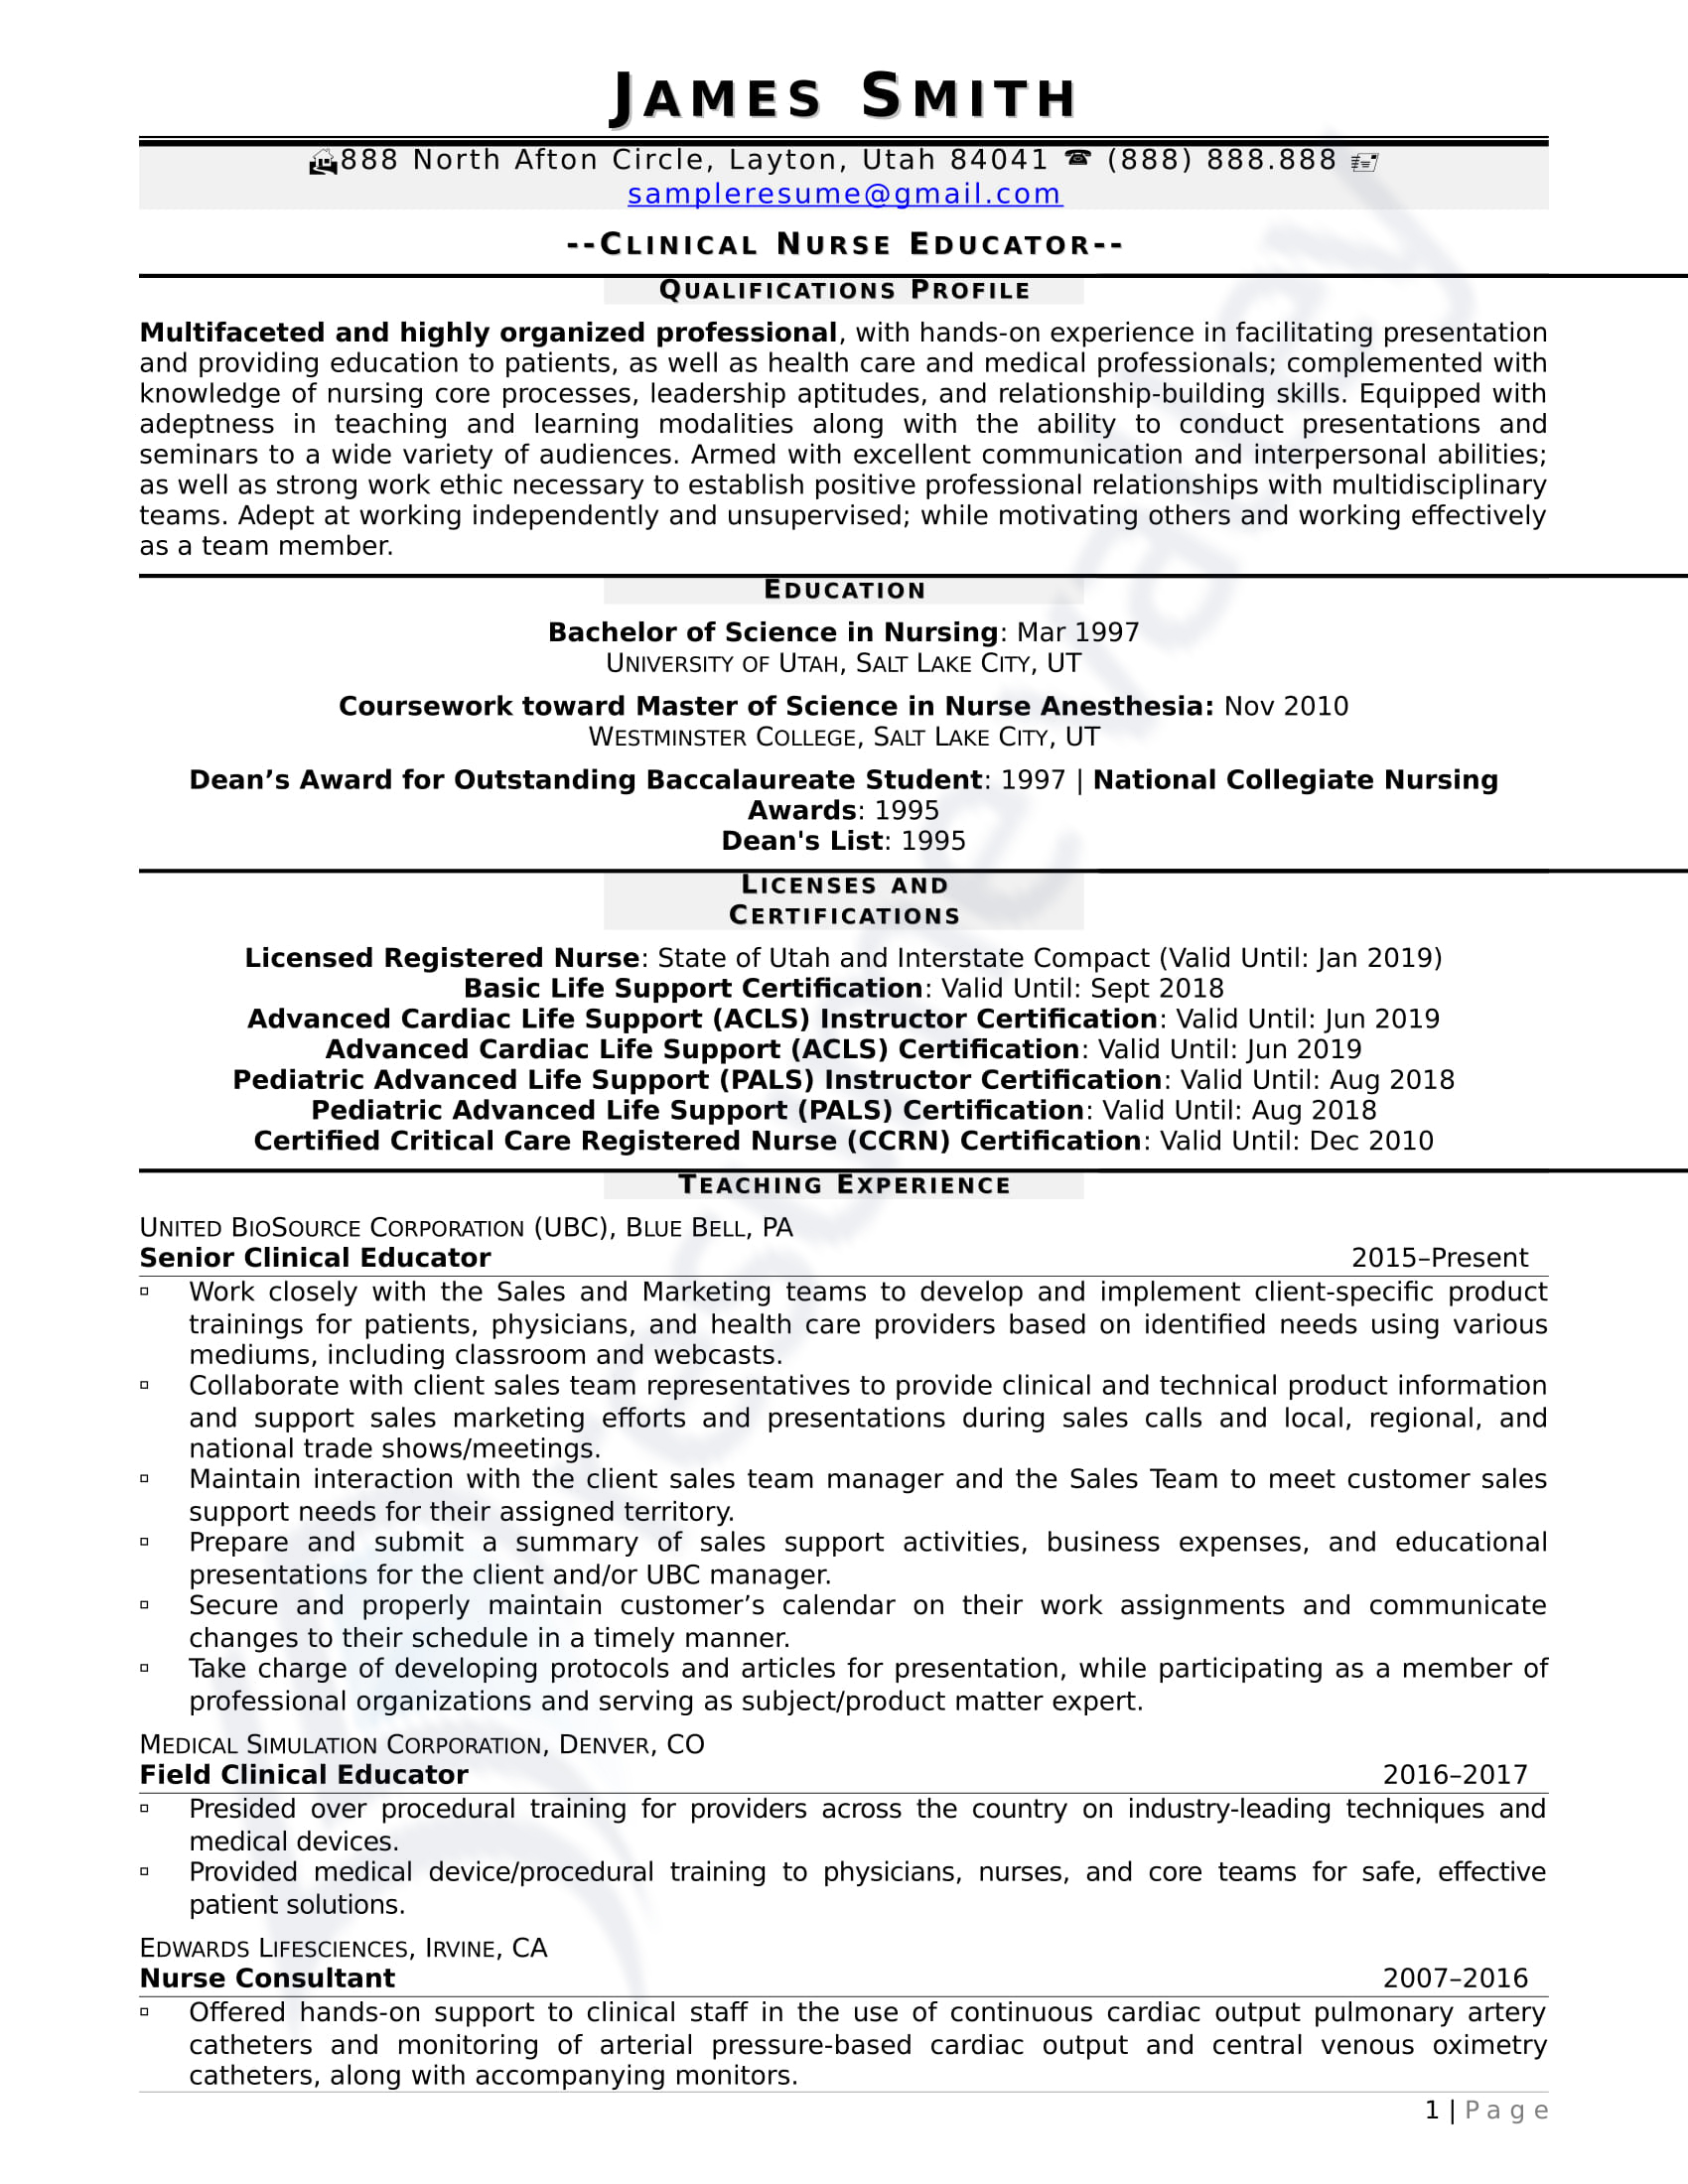 Clinical Nurse Educator_Curriculum Vitae